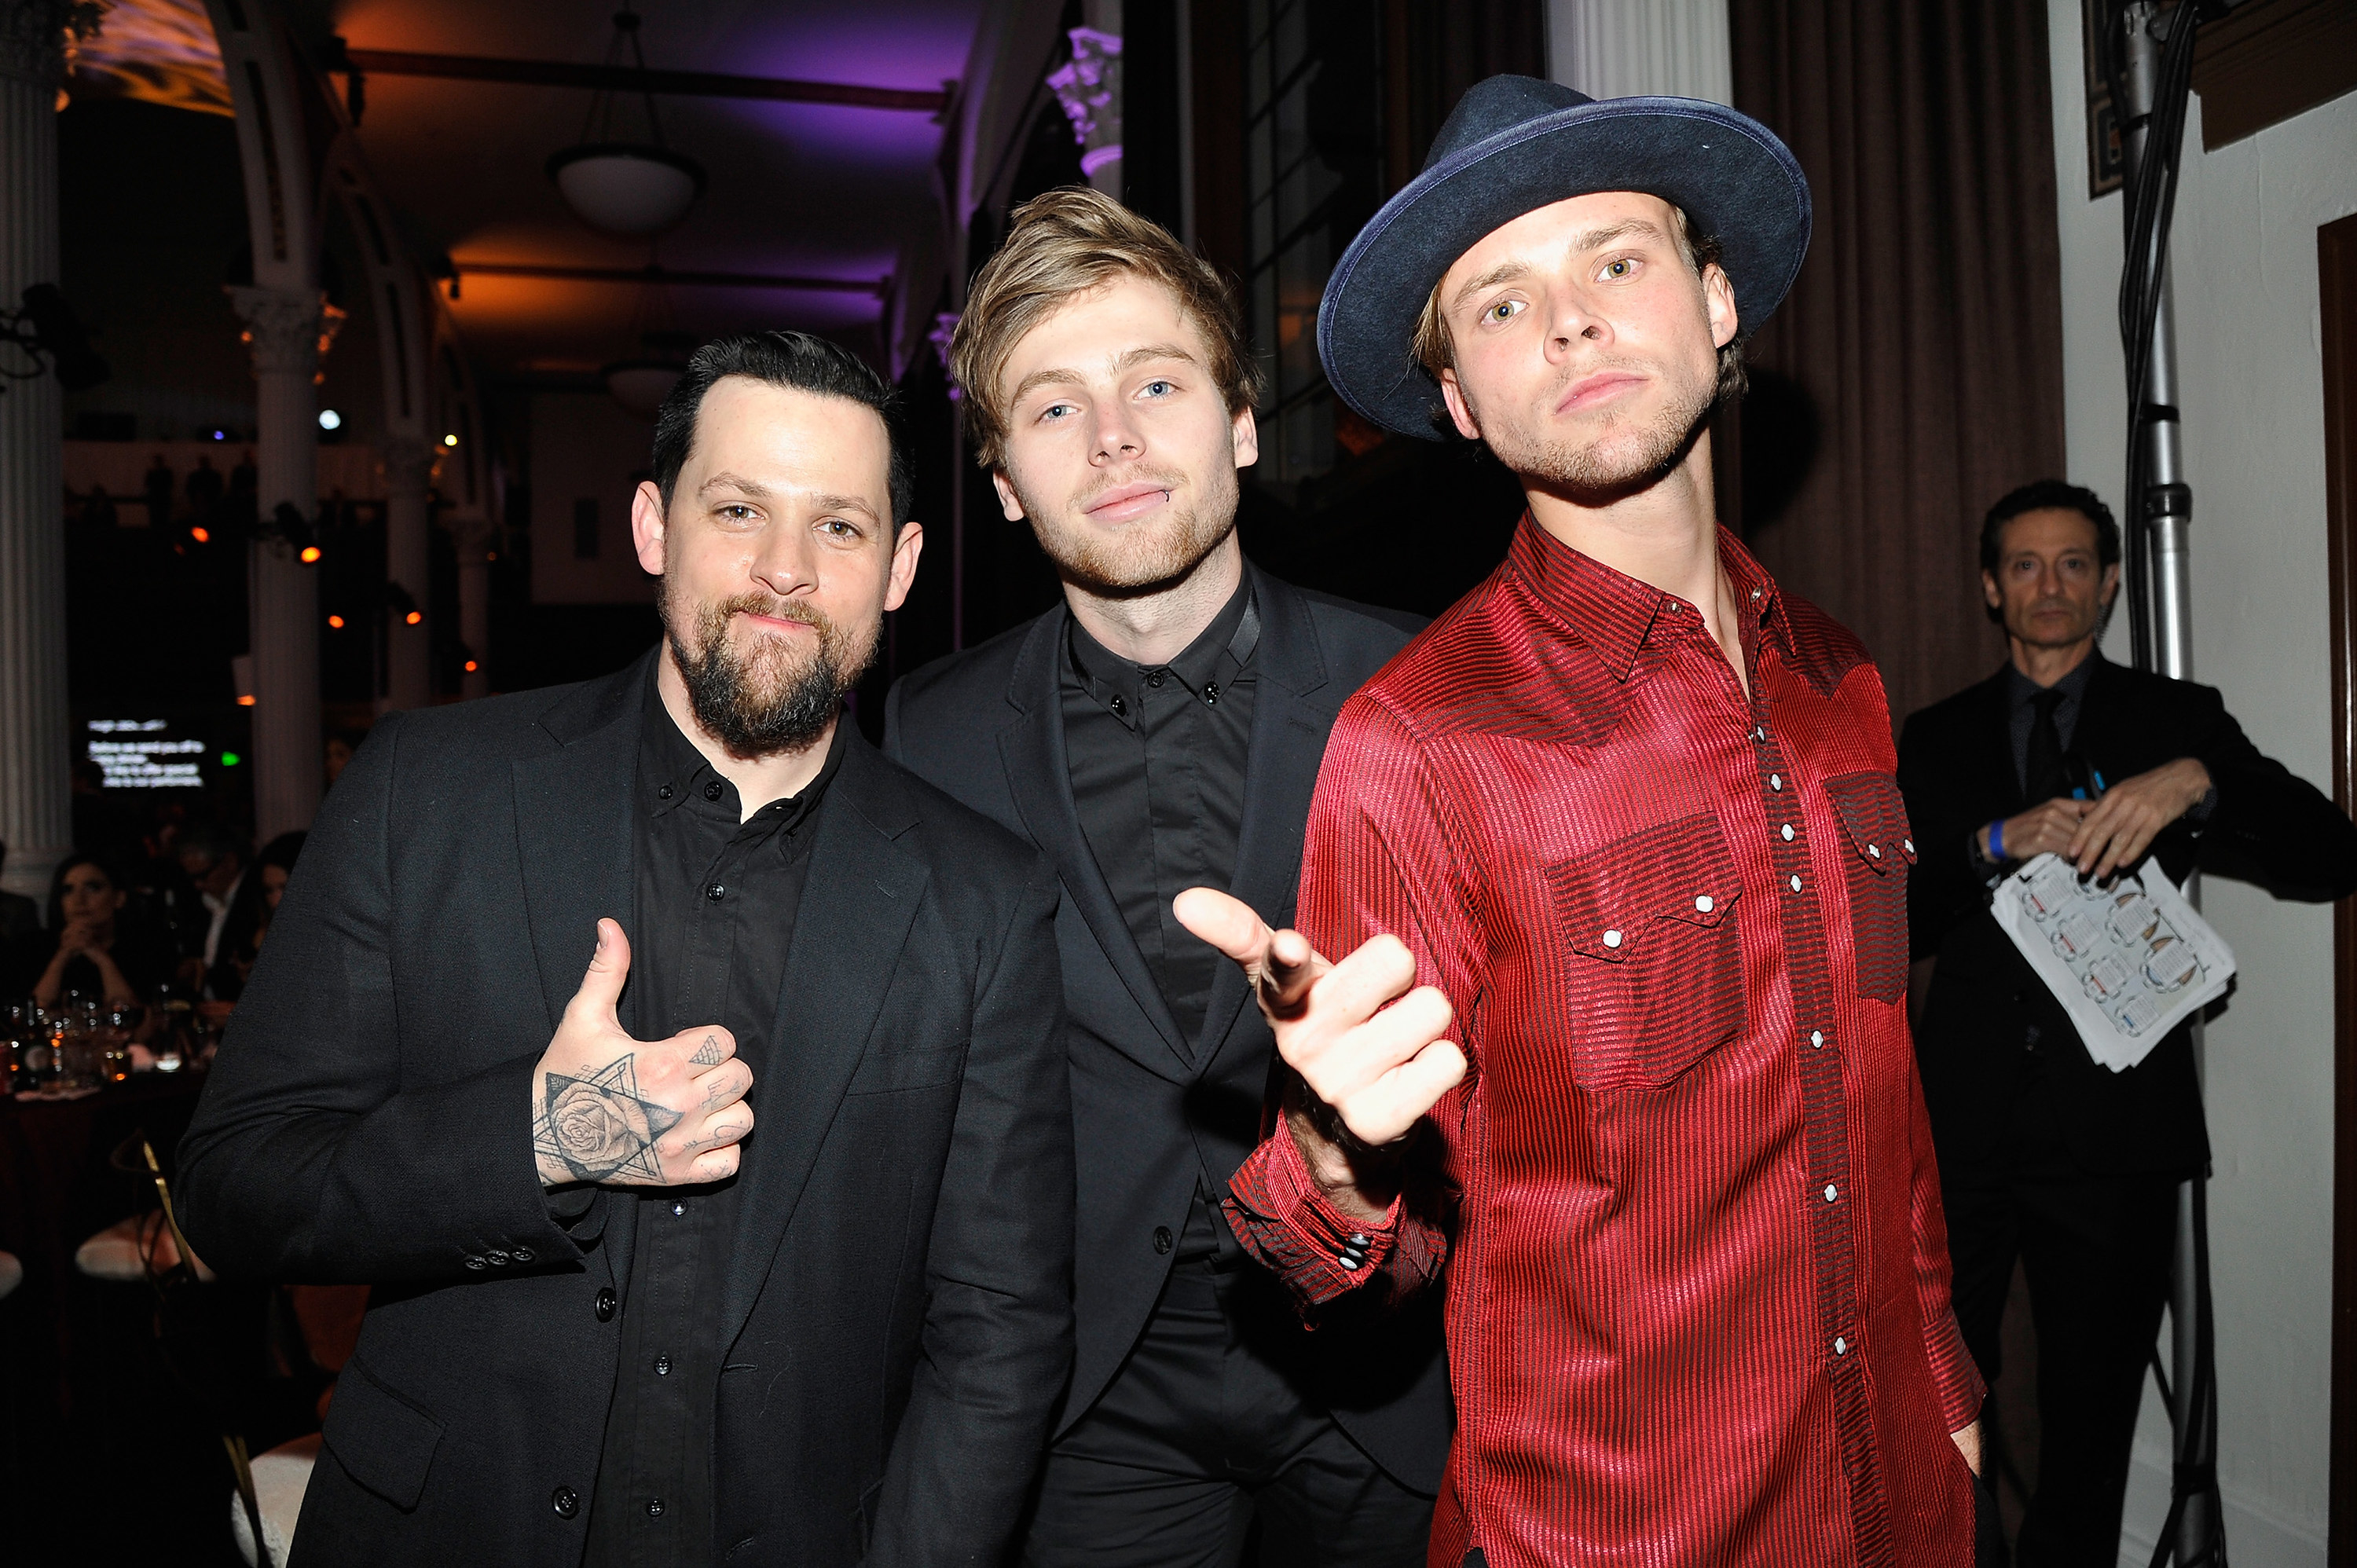 Luke and Michael Clifford posing with Joel Madden